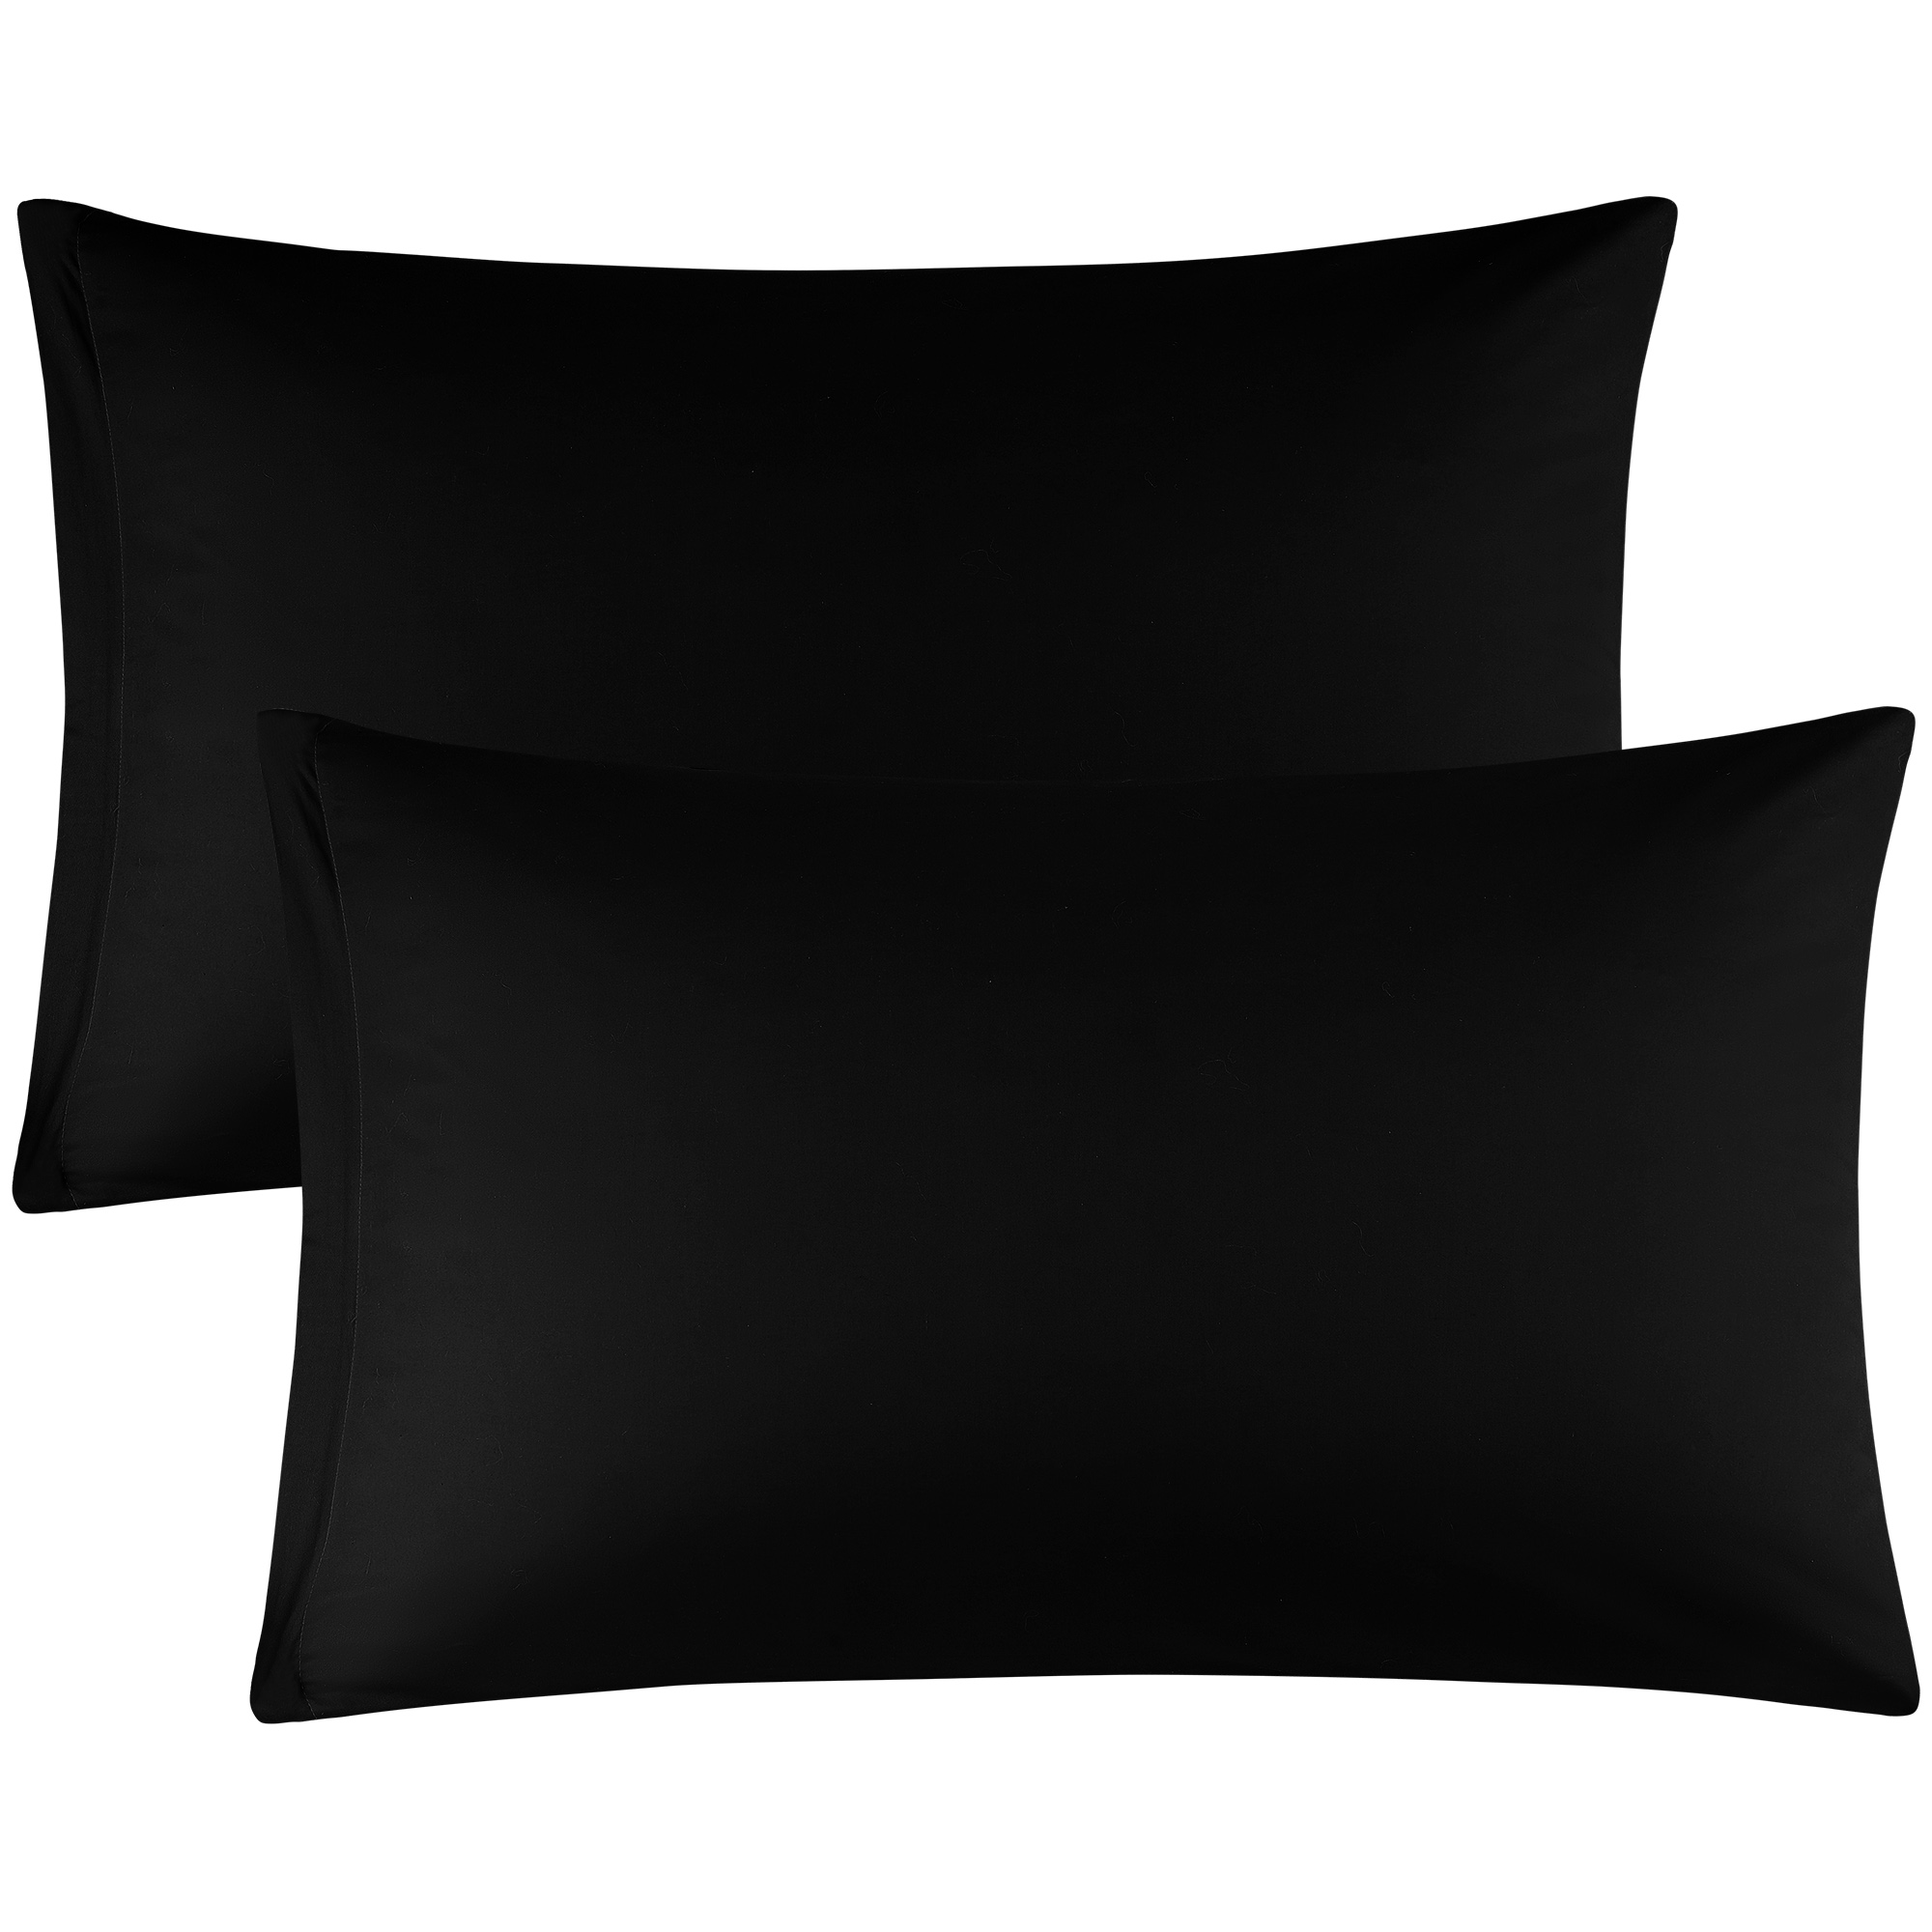 Zippered Cases Pillowcases Covers Egyptian Cotton 2-Pack (20 x 36 Inch, Black)